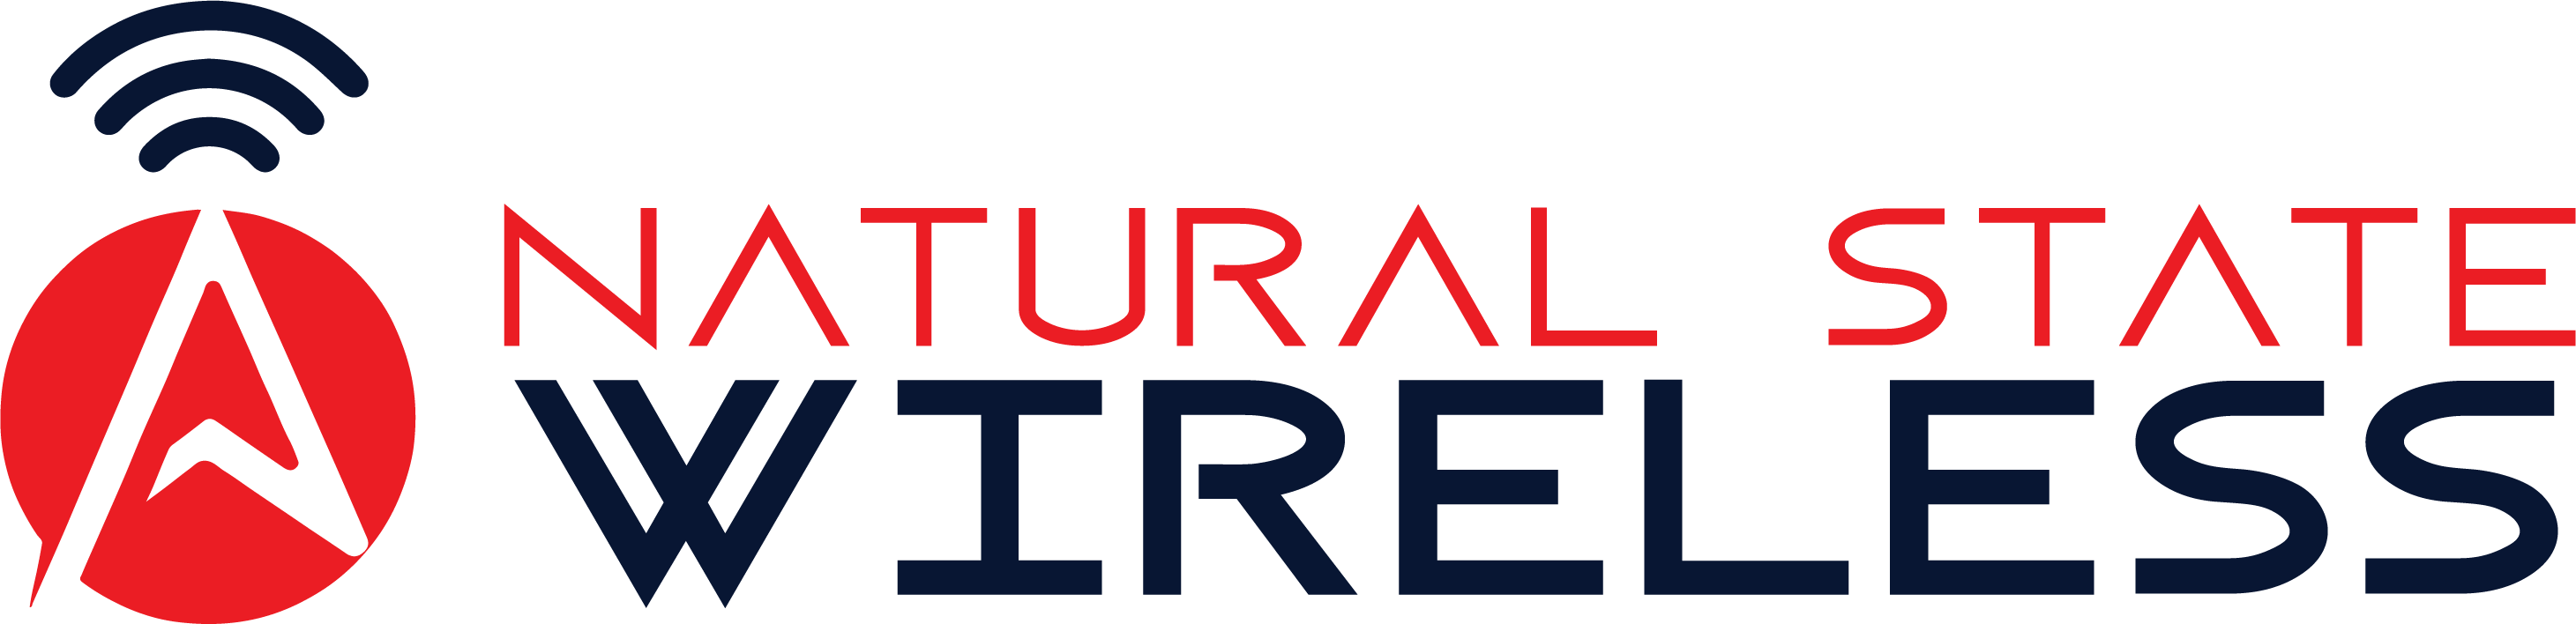 Natural State Wireless